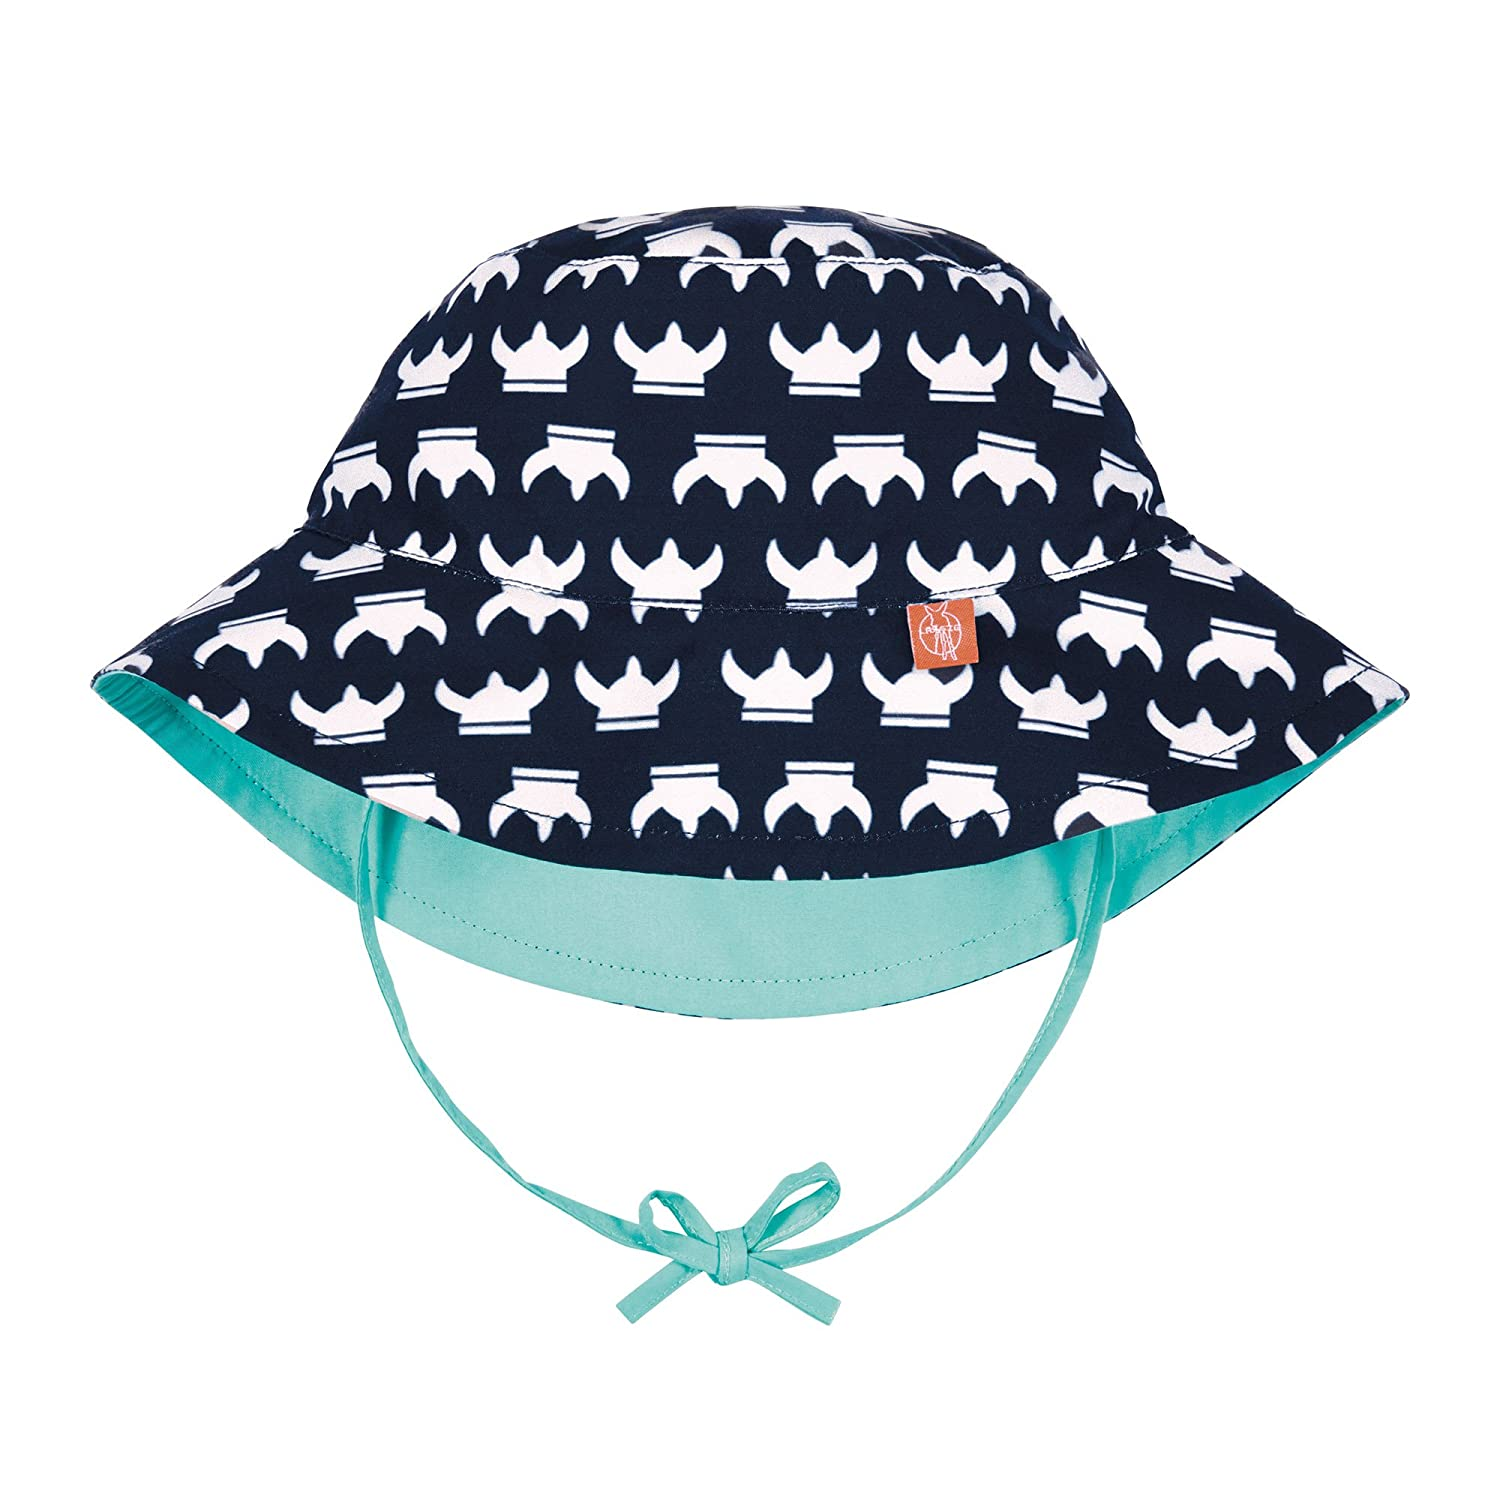 Lässig 1433005411 Baby Sun Protection Bucket Hat Sonnenhut, Viking, Size: New Born 0-6 Monate, mehrfarbig Laessig GmbH 1433005411-06